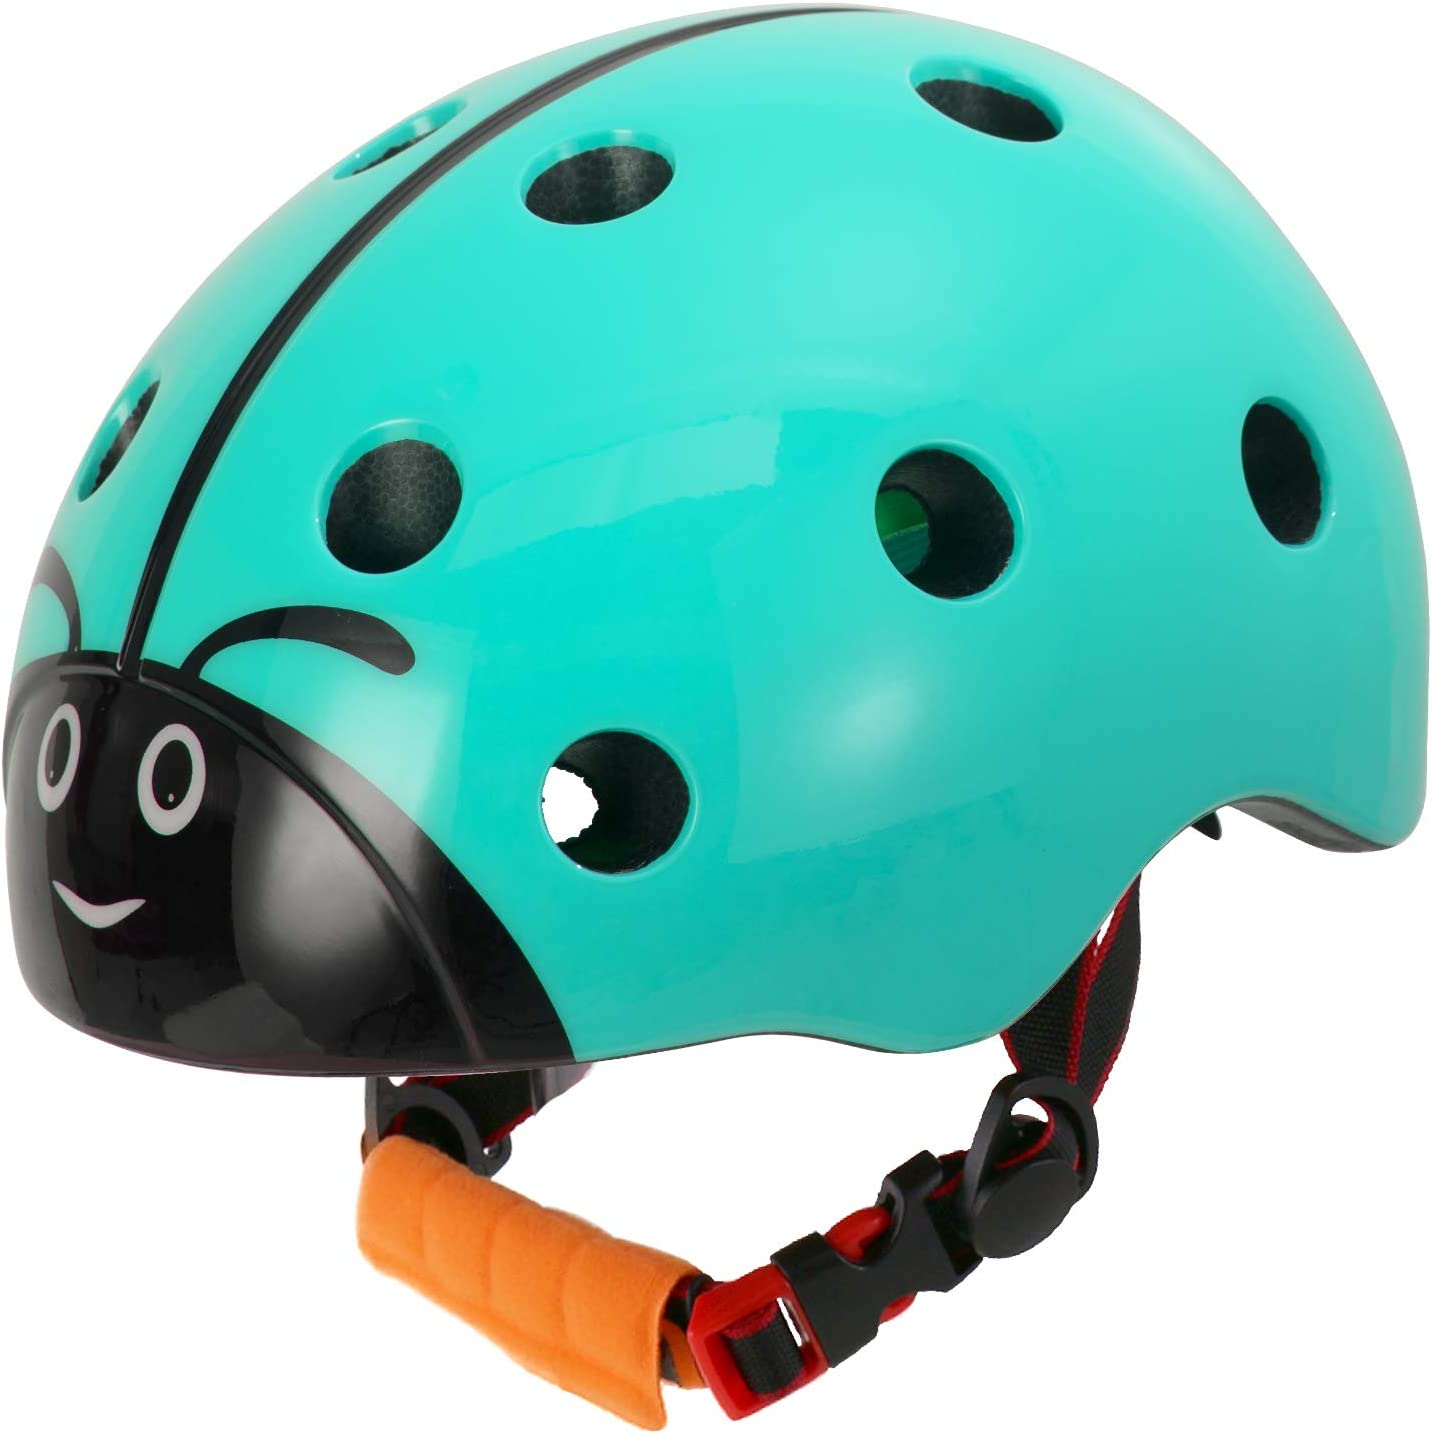 Ages 3 to 8 Years Old Boys Girls Multi-Sports Safety Cycling Skating Scooter Helmet DR BIKE Kids Helmet Adjustable from Toddler to Youth Size